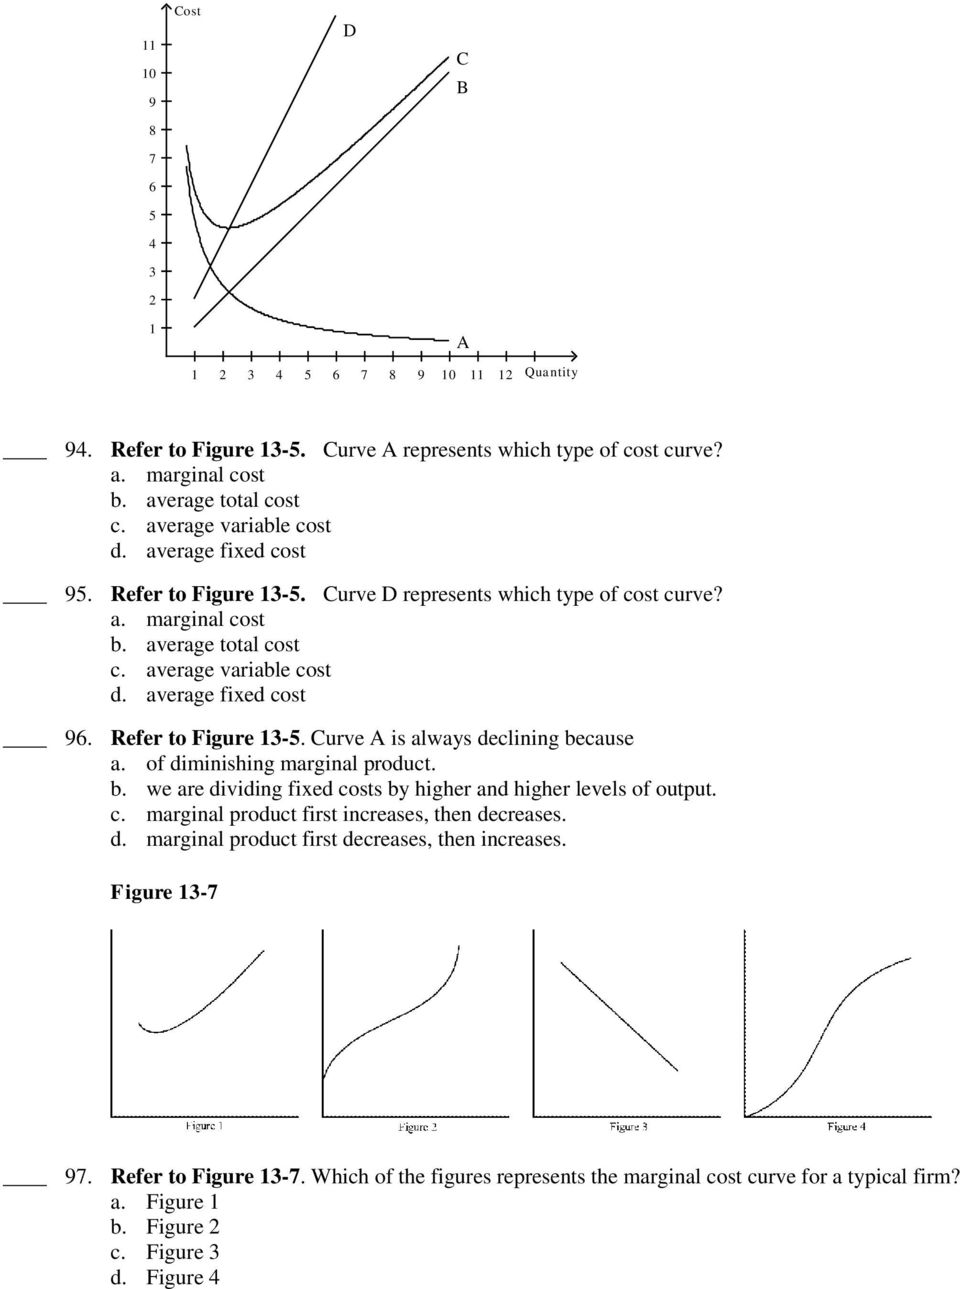 average fixed cost 96. Refer to Figure 13-5. Curve A is always declining because a. of diminishing marginal product. b. we are dividing fixed costs by higher and higher levels of output. c. marginal product first increases, then decreases.